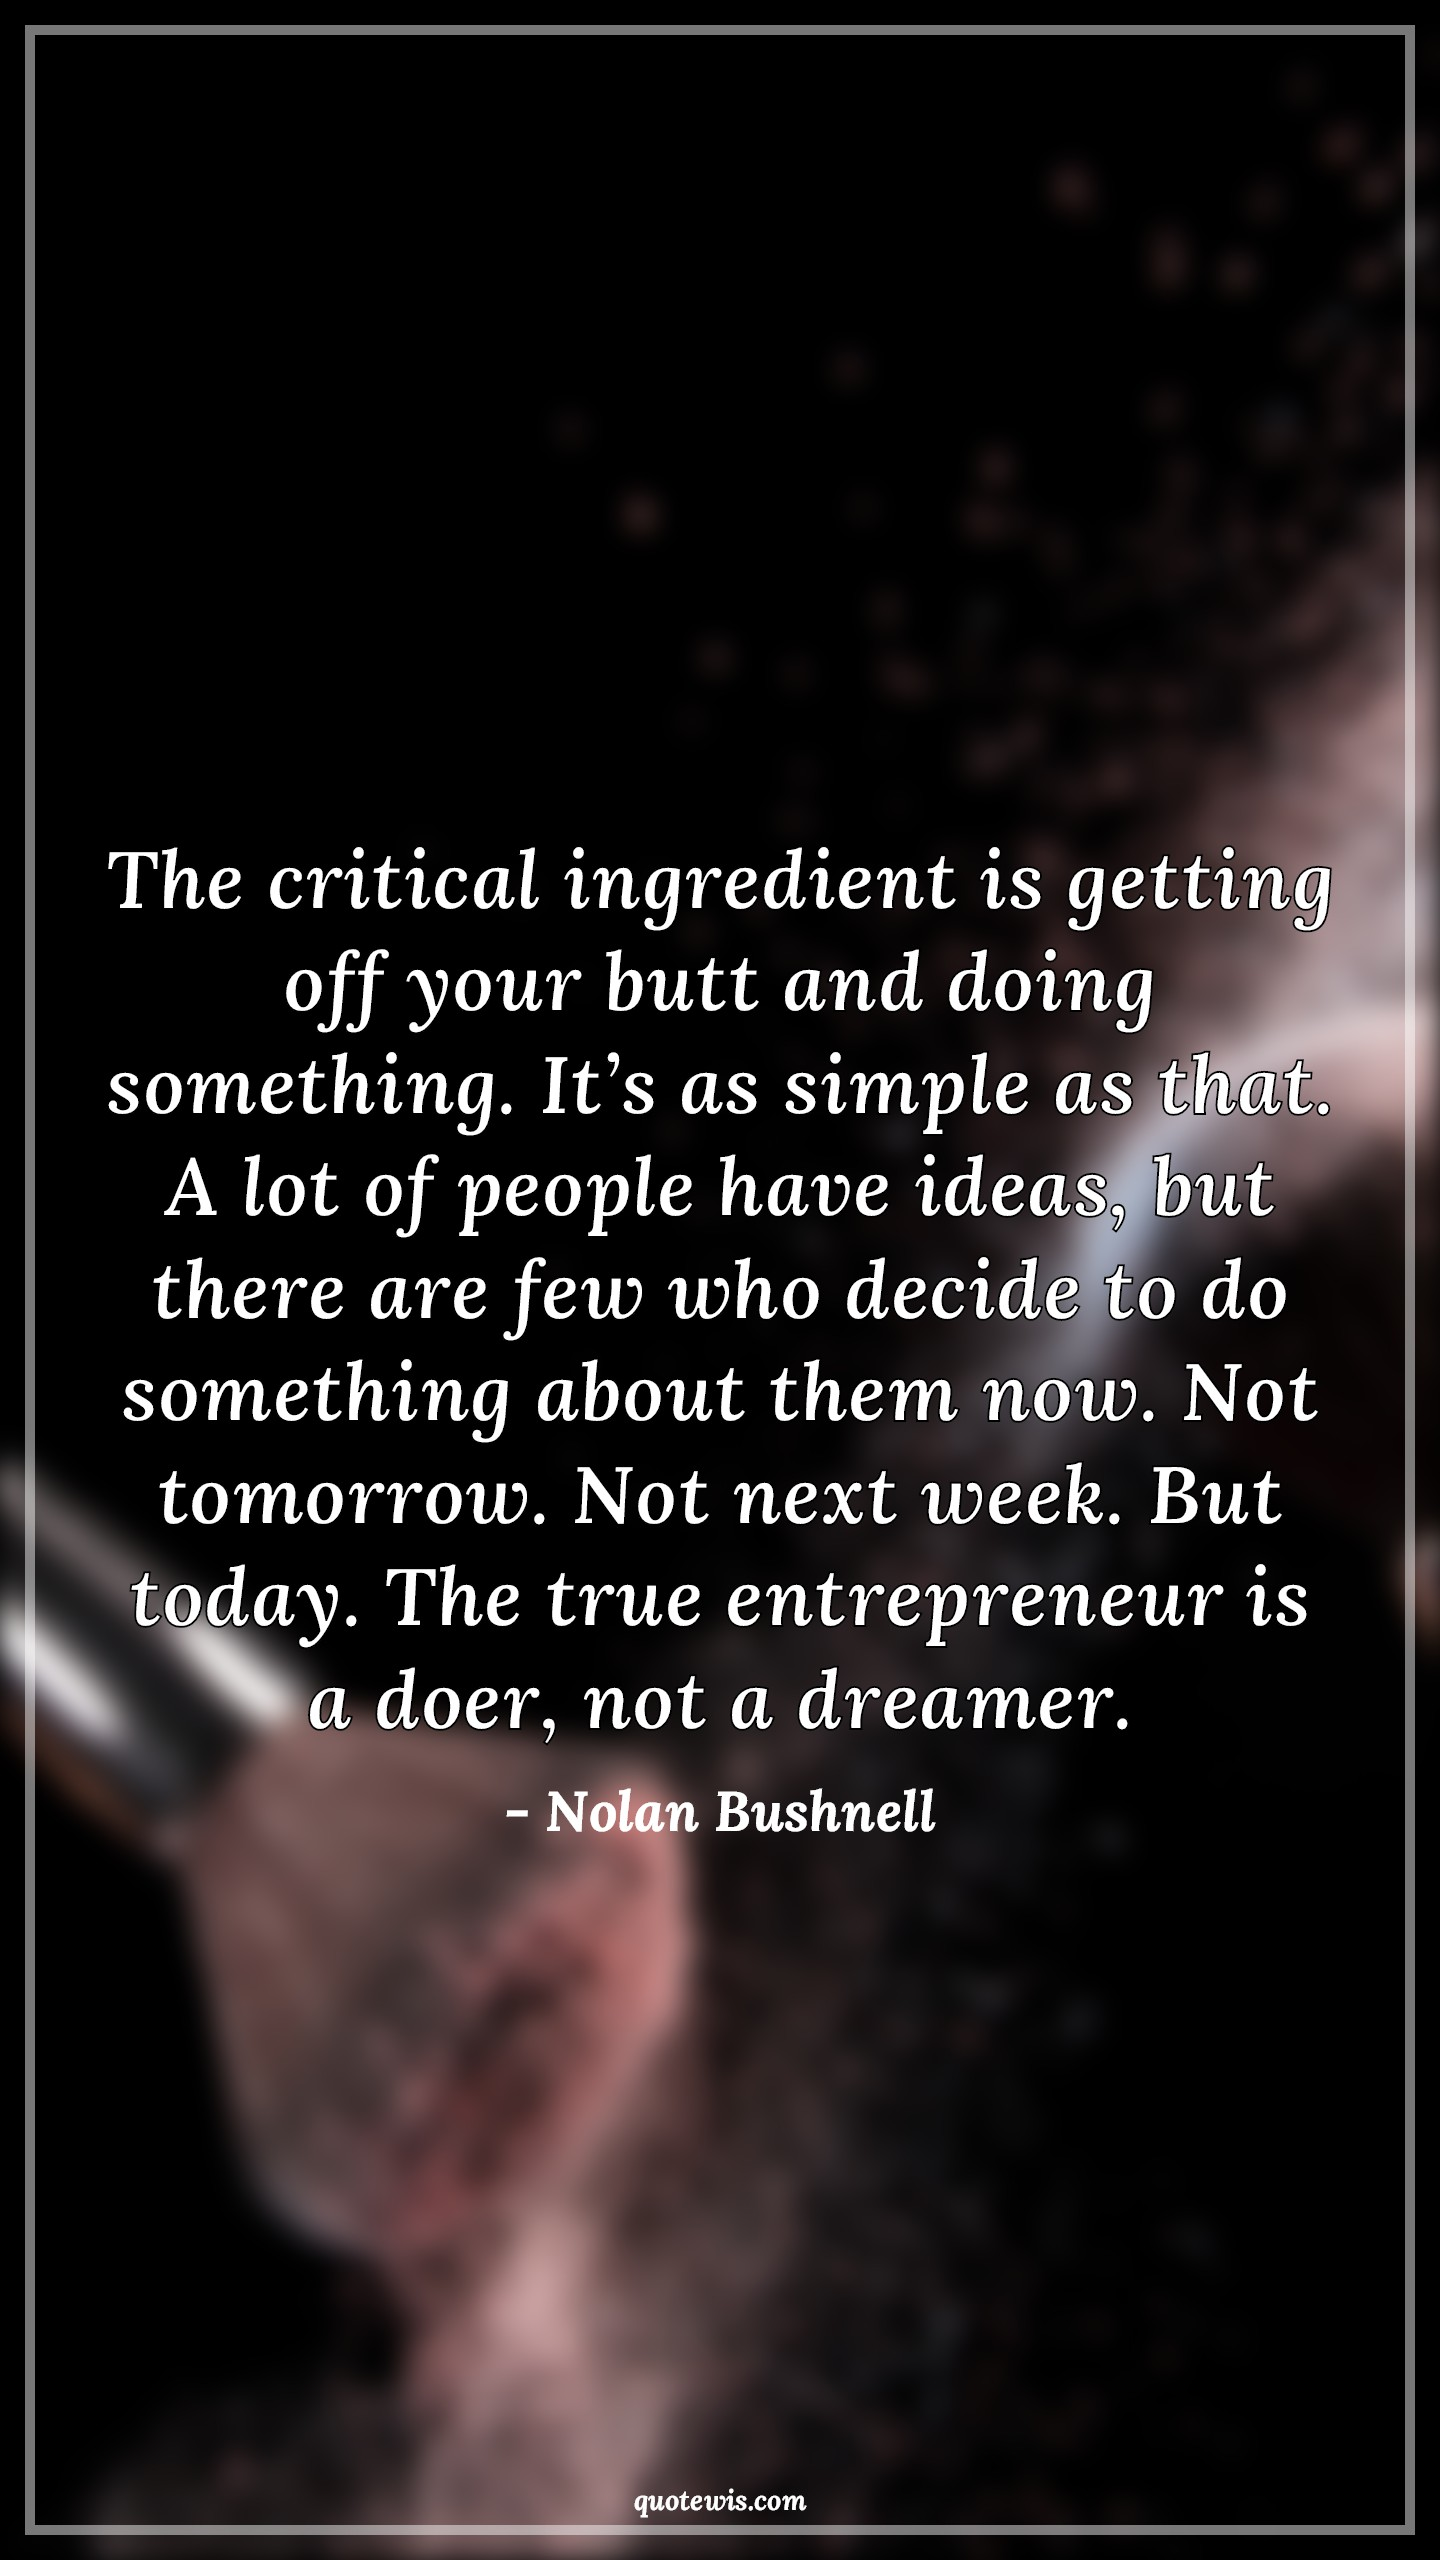 The critical ingredient is getting off your butt and doing something. It's as simple as that. A lot of people have ideas, but there are few who decide to do something about them now. Not tomorrow. Not next week. But today. The true entrepreneur is a doer, not a dreamer.